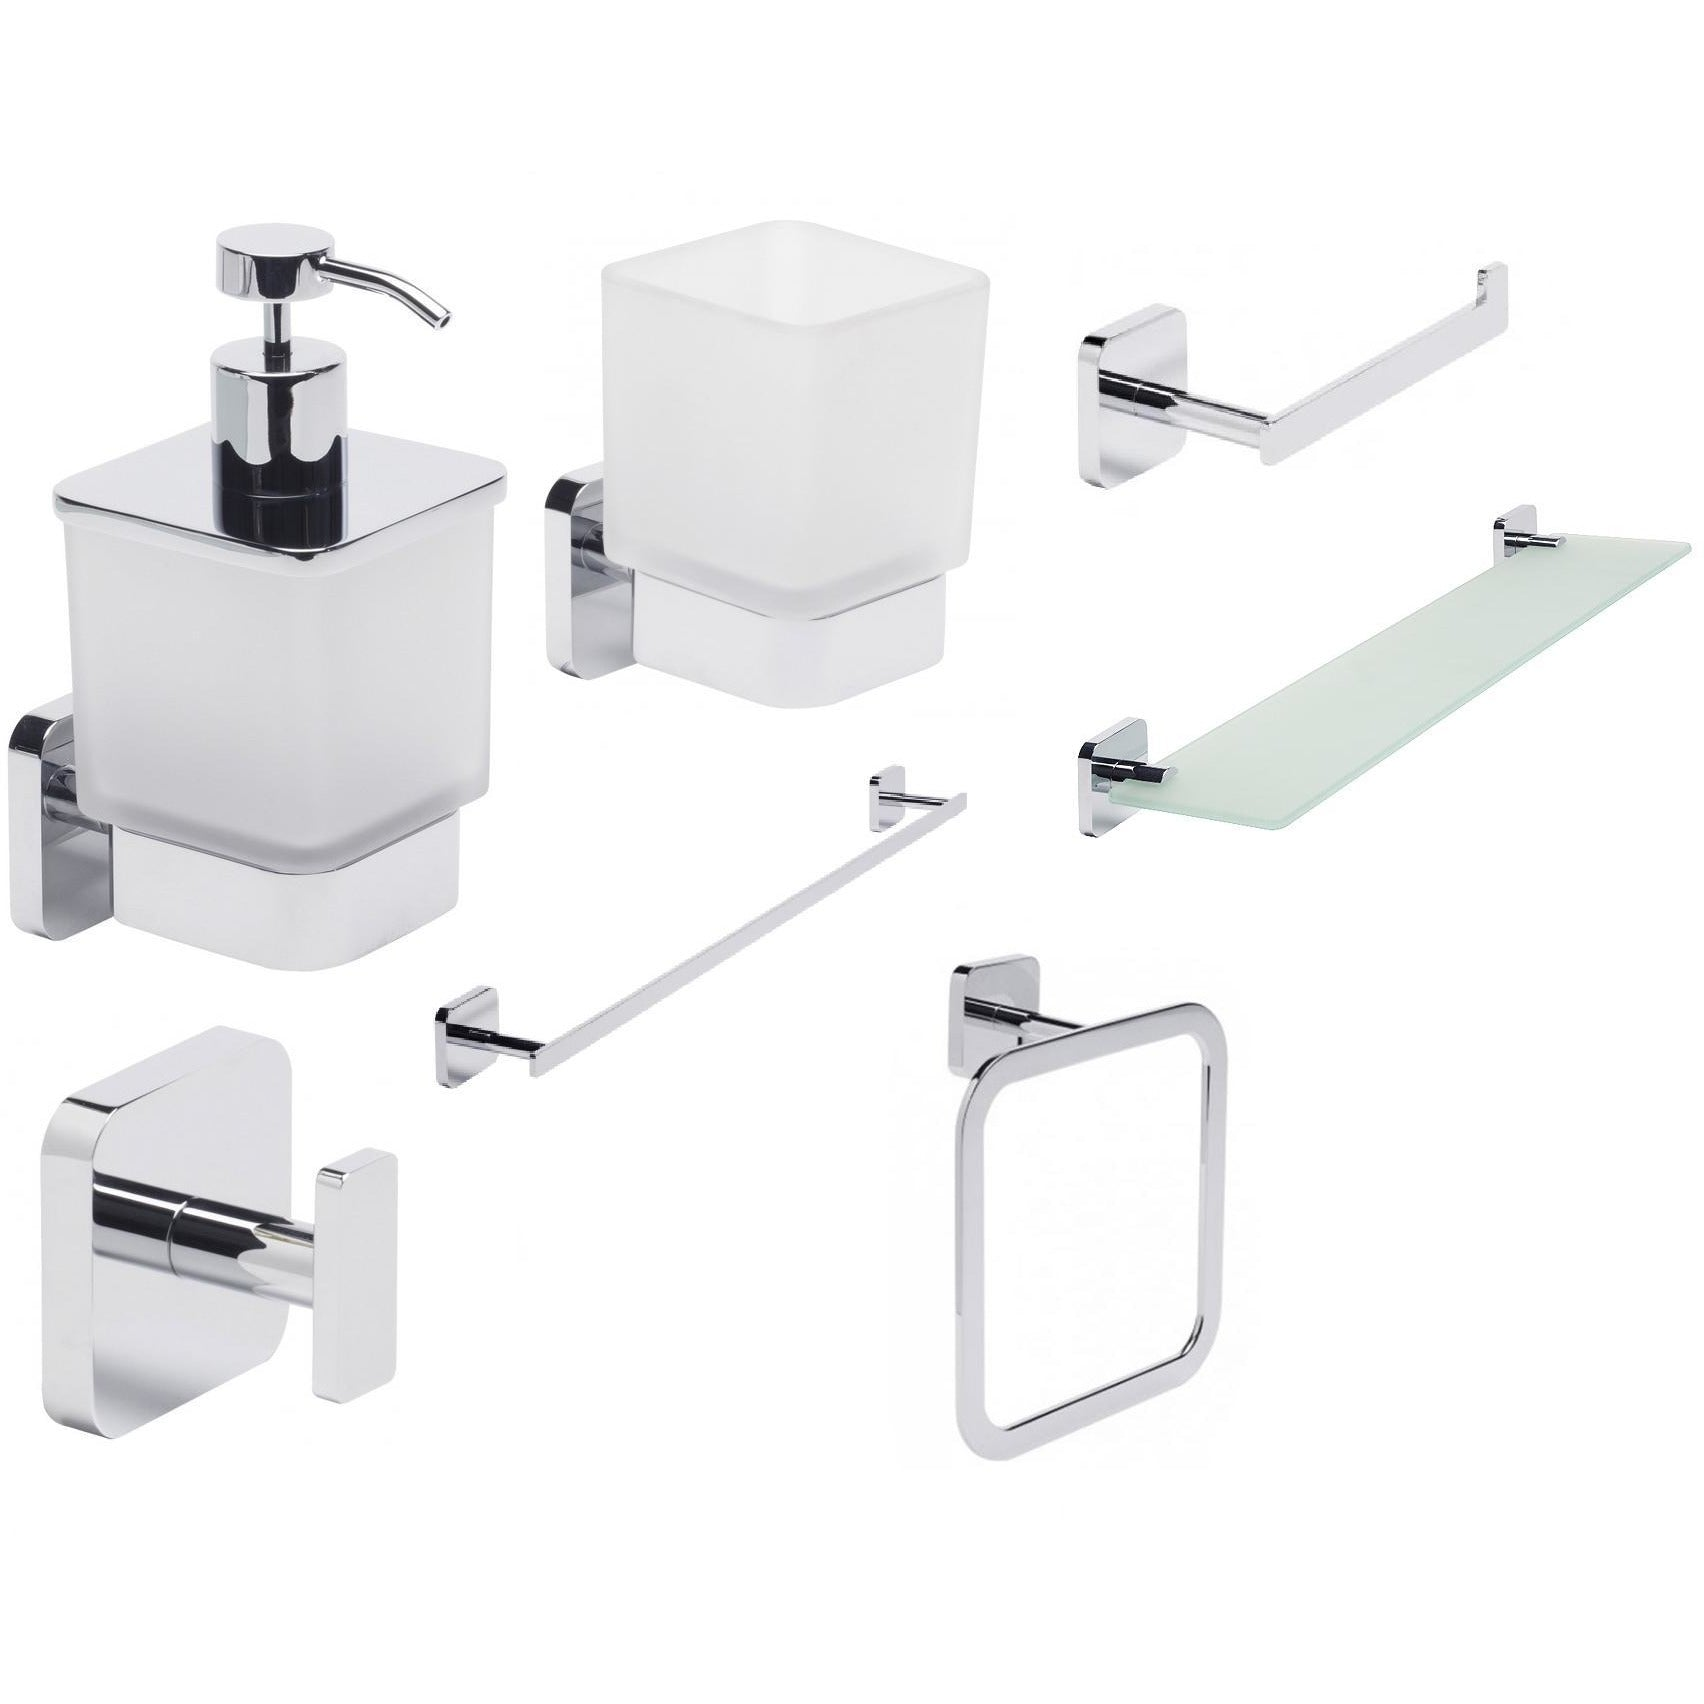 Roper Rhodes Designer Bathroom Accessory Range Ignite – Freedom ...